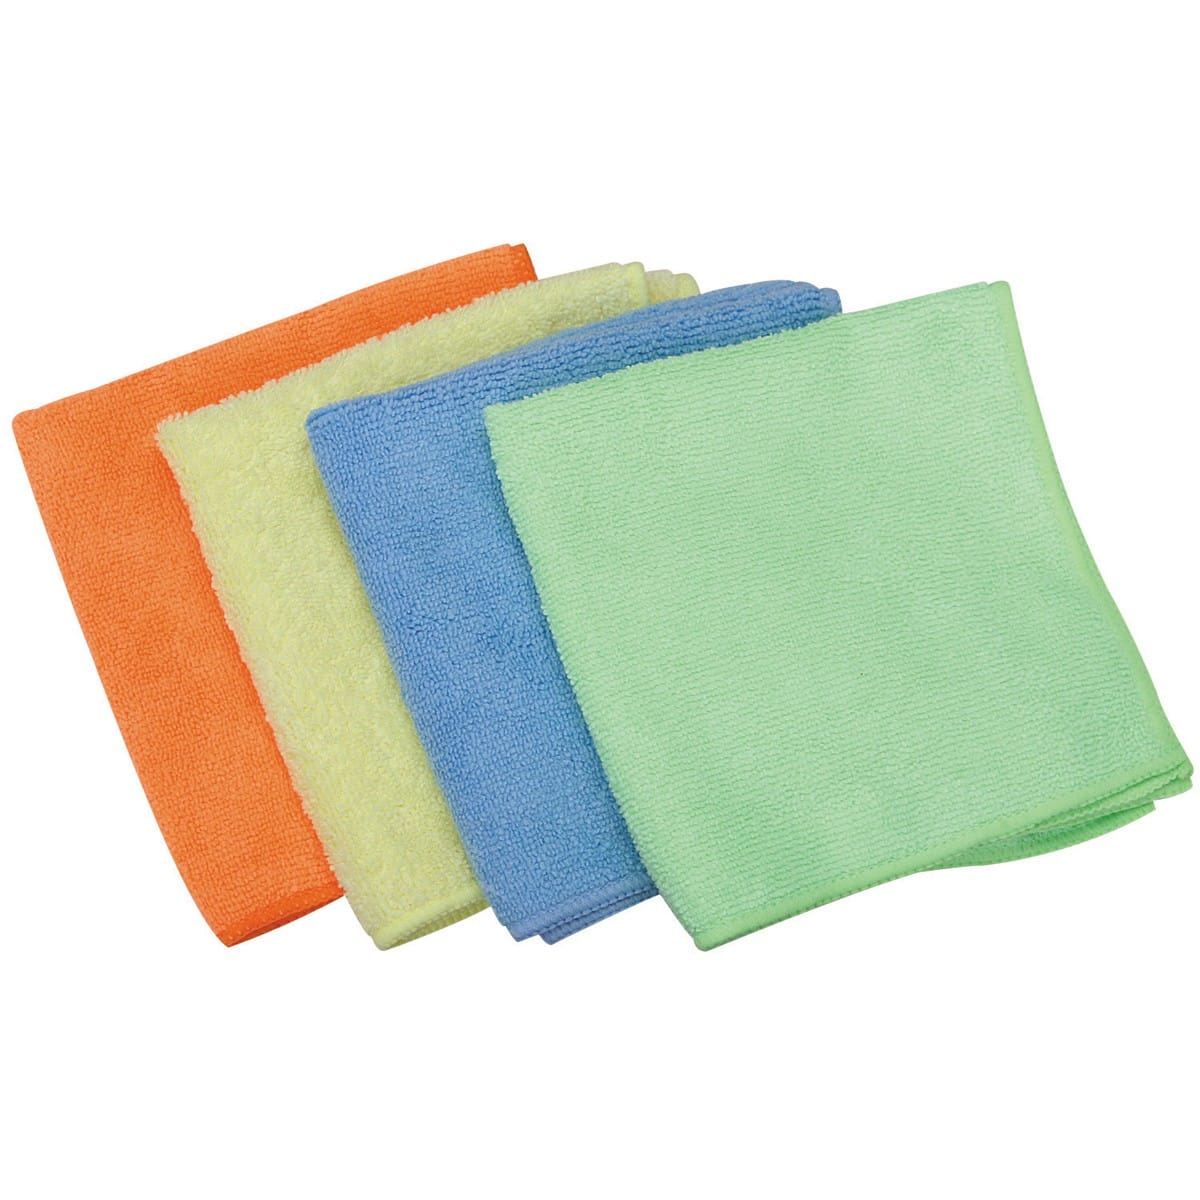 New free gift at Harbor Freight - 4 pack of Microfiber Cleaning Cloths with $4.99 purchase and coupon (5/20 to 5/22 only)